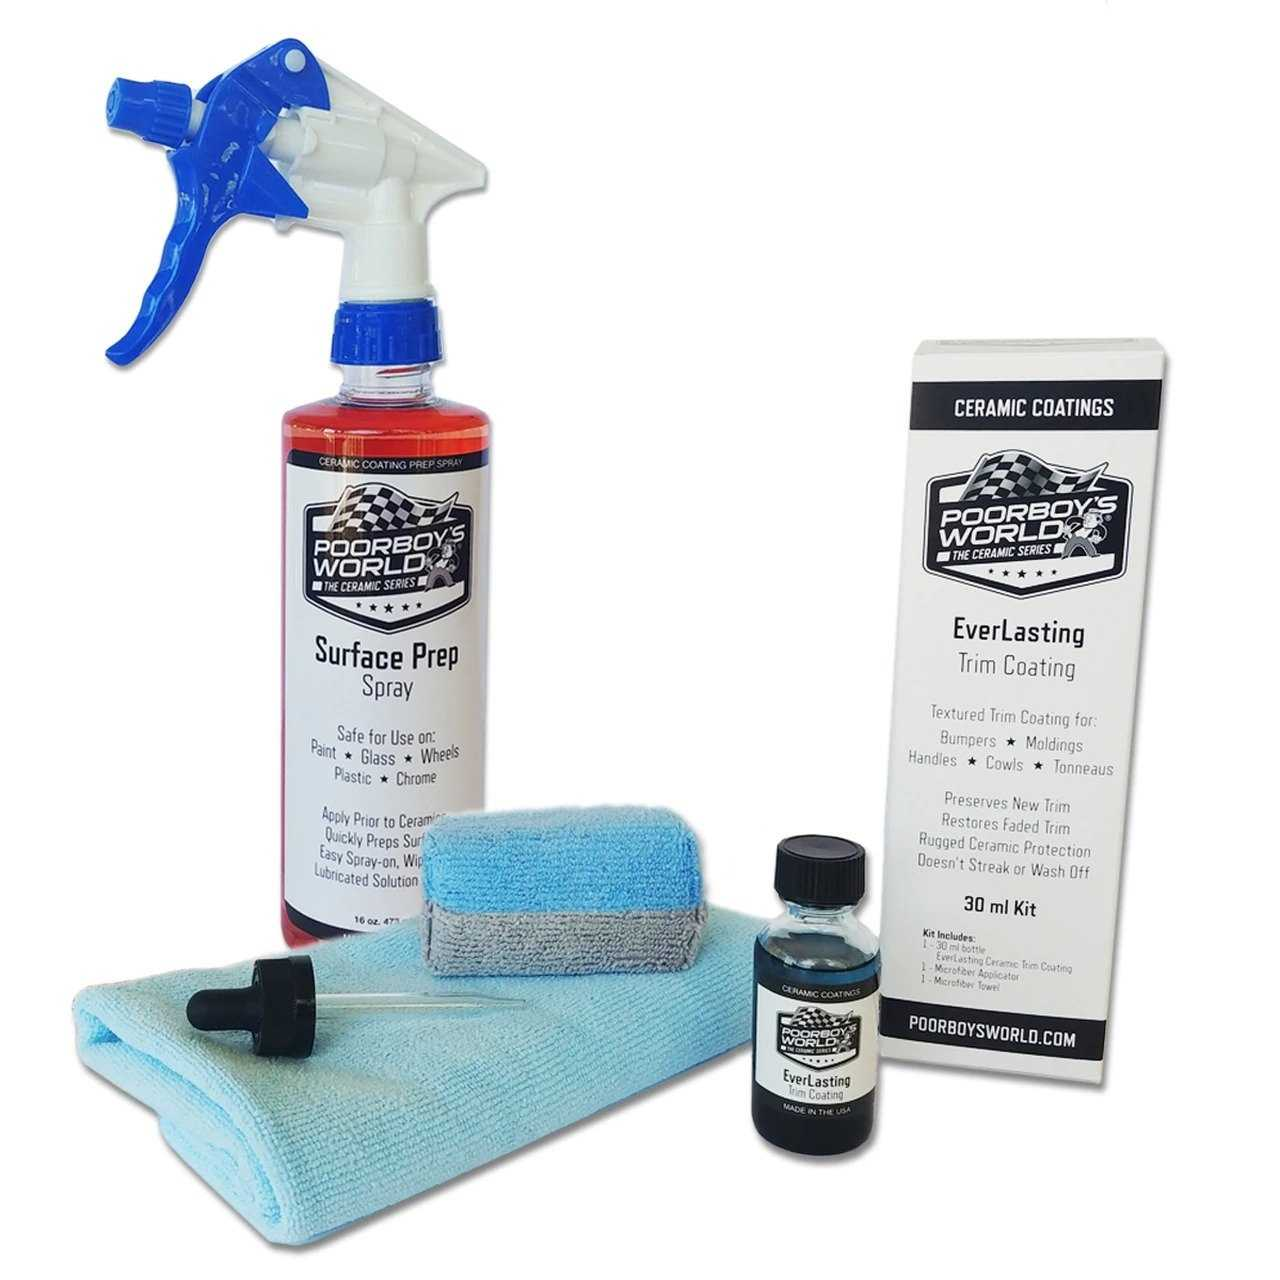 Trim Coating 30 ml Kit PLUS 16 oz Surface Prep w/ Sprayer